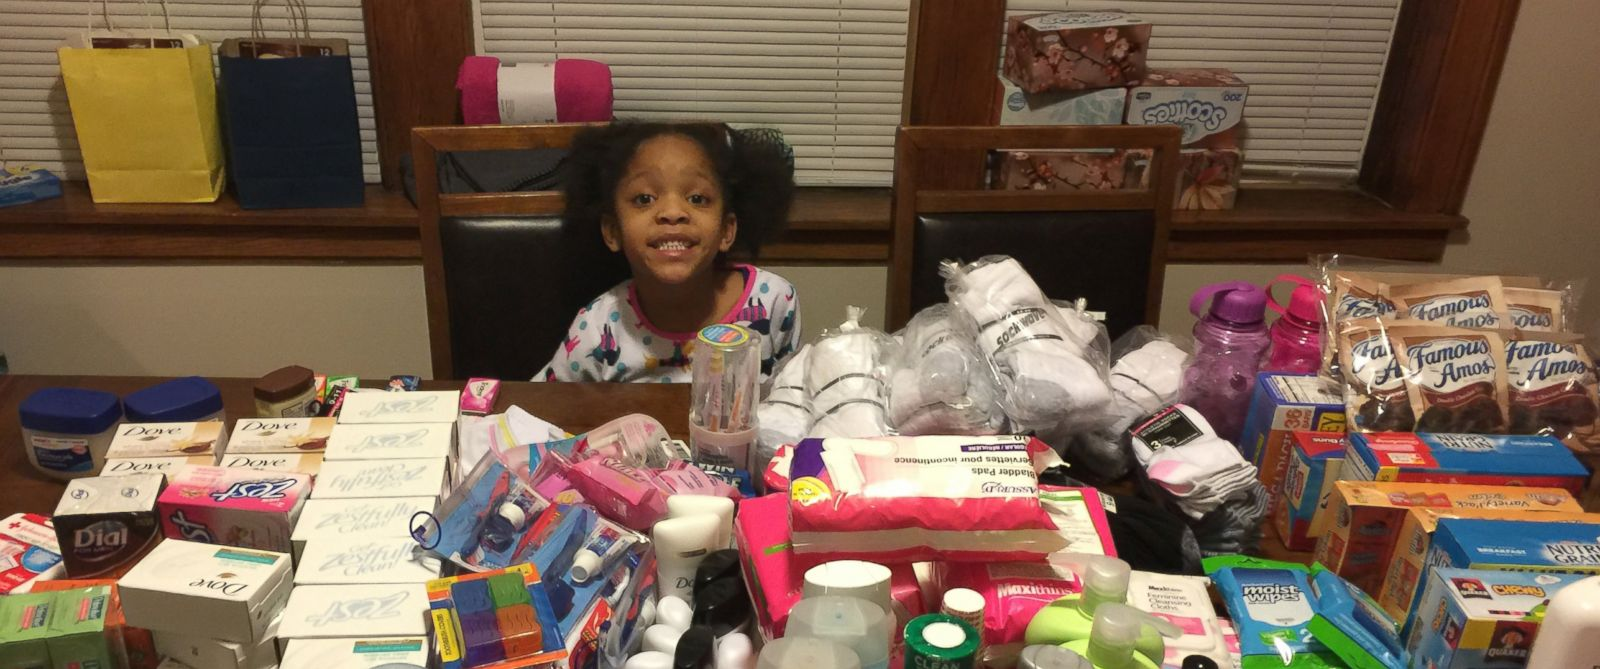 PHOTO: Artesha Crews daughter Armani wanted to feed the homeless instead of having a traditional birthday party when she turned 6 on March 5.